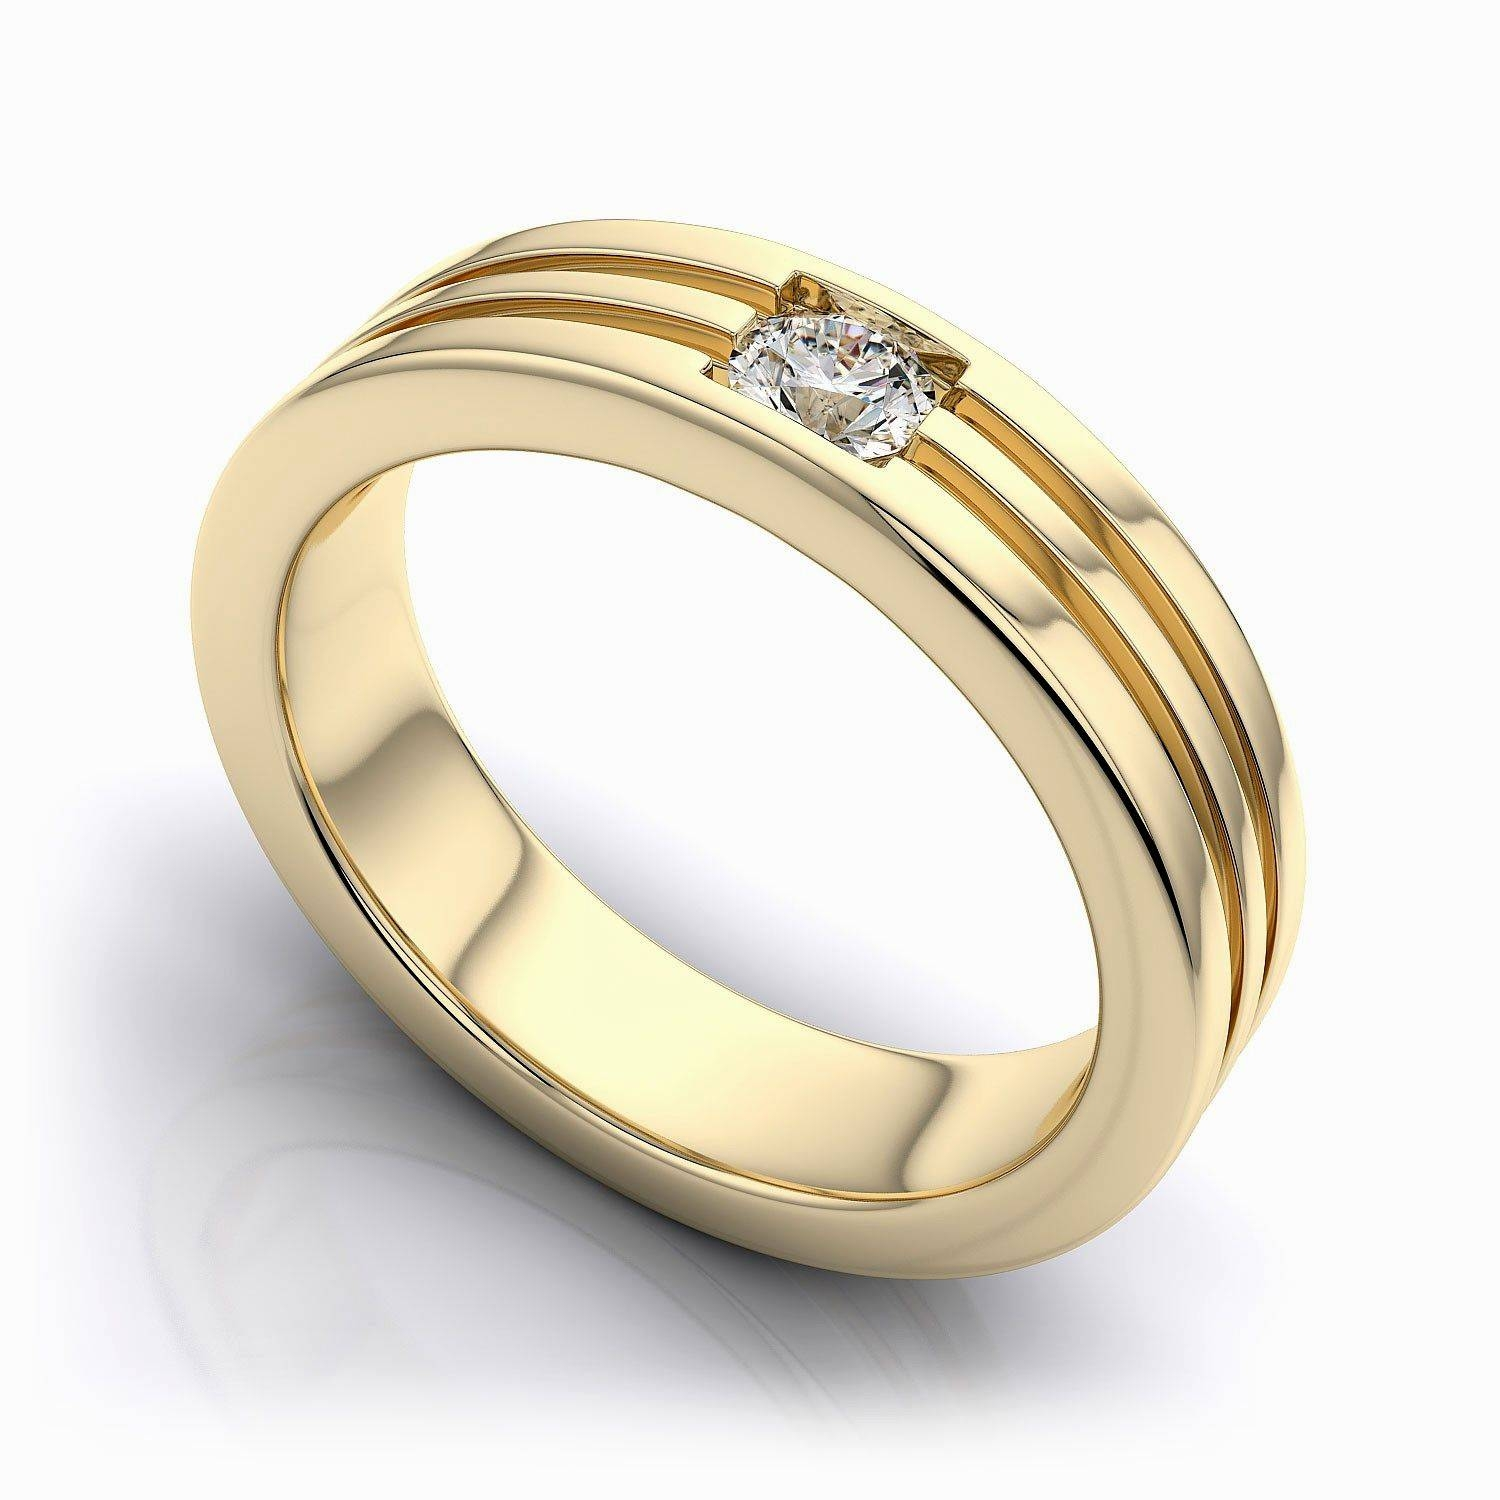 rings tw mens men for carat ring and jewellery diamond yellow ladies k wedding gold